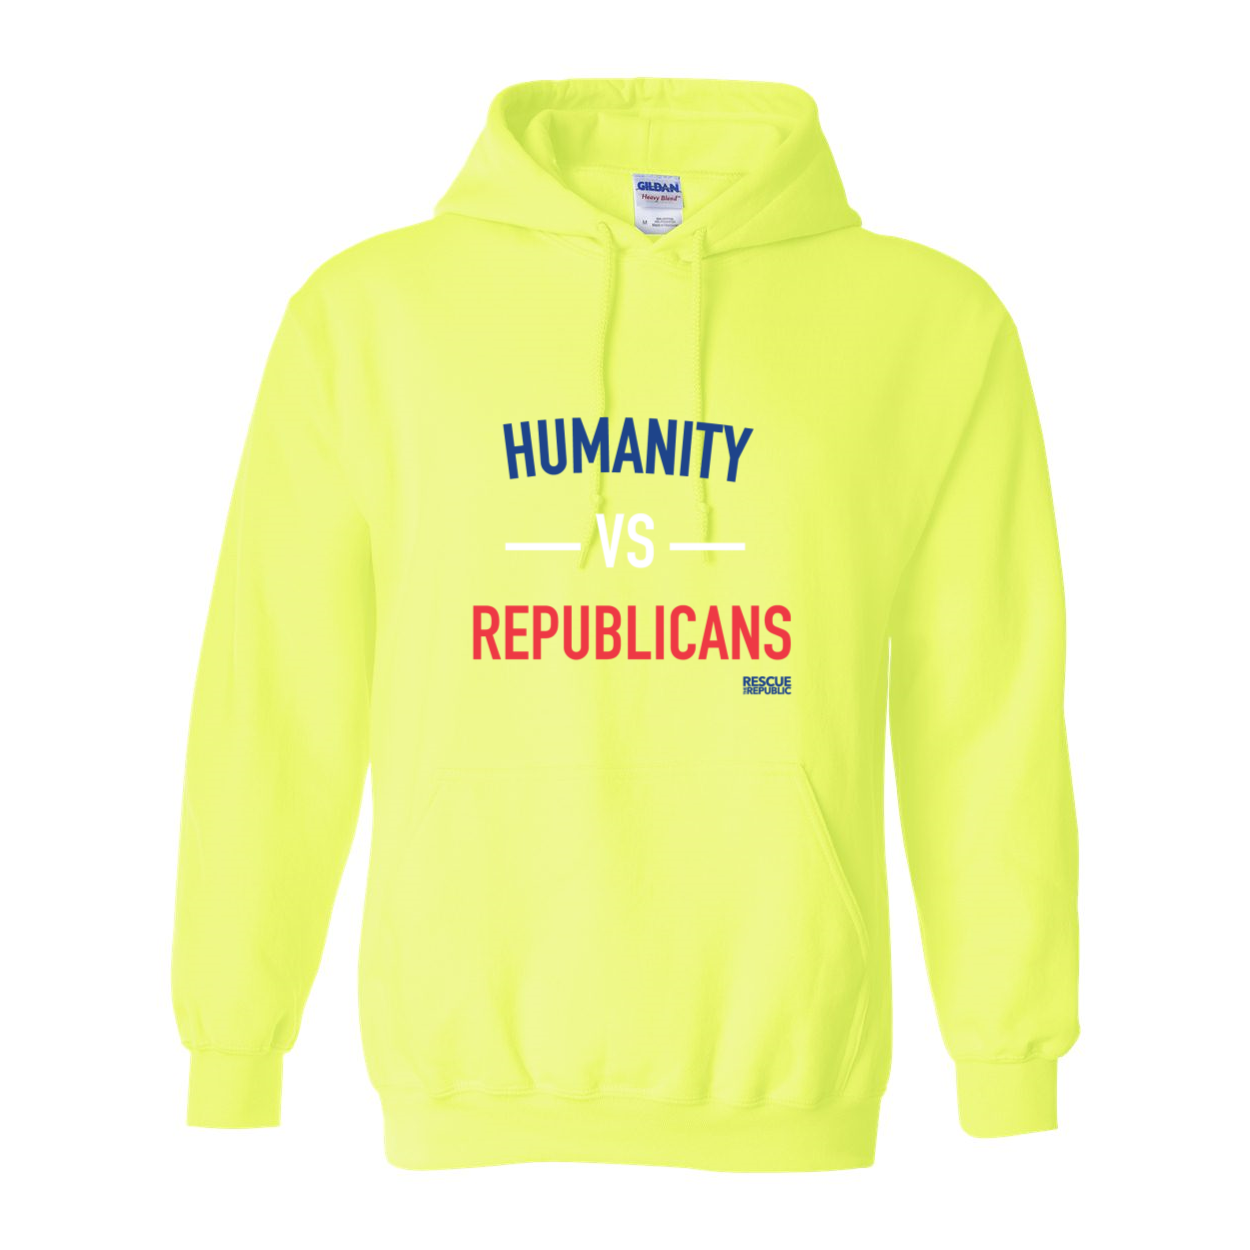 Humanity VS Republicans Hoodie Sweatshirt